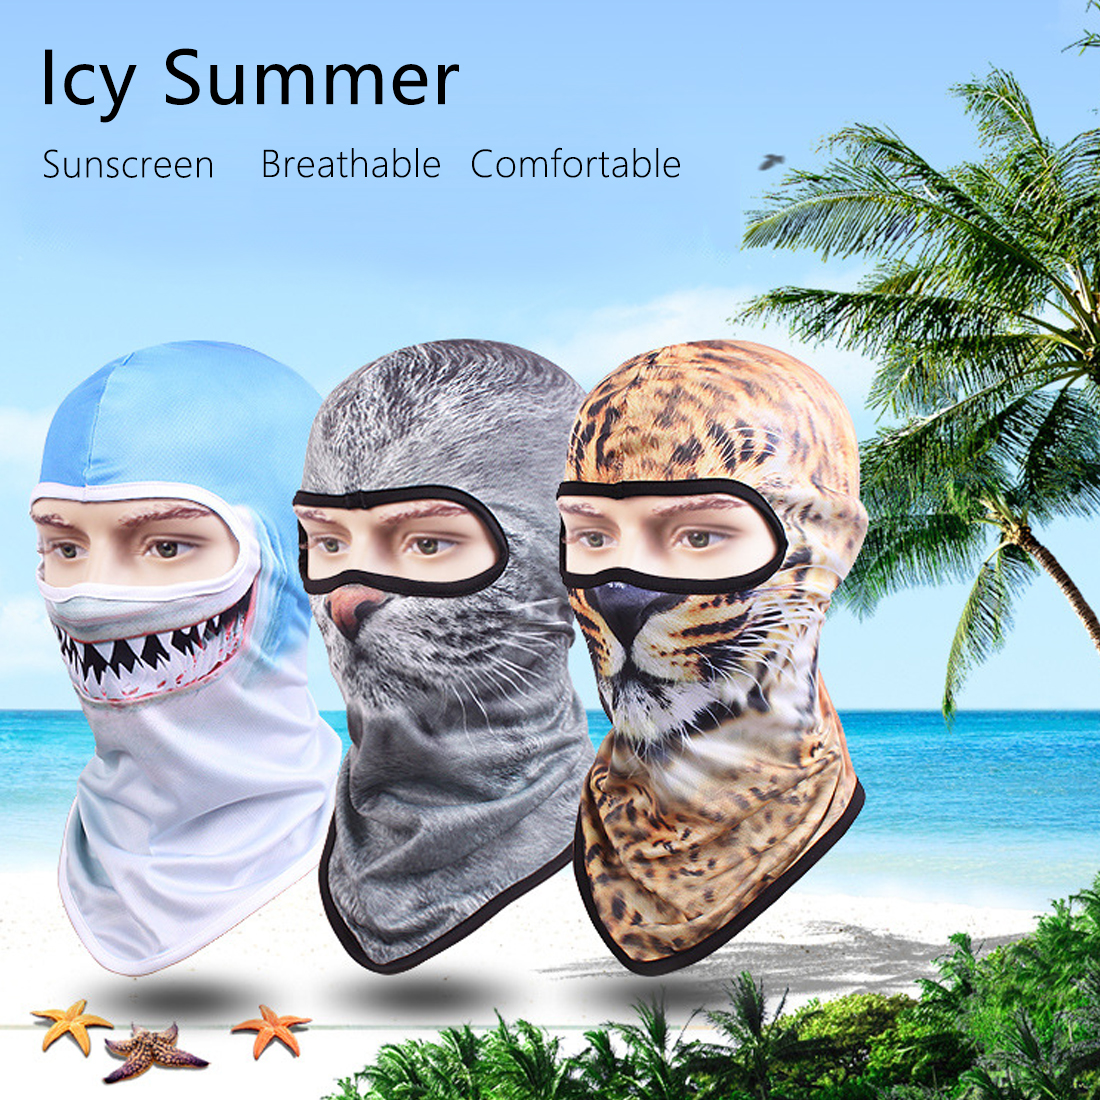 Girl's Accessories Motivated Quick Dry Breathable Mask Hat Men Women Personality Outdoor Riding Sunscreen Full Face Cartoon Mask 3d Animal Skull Hats Cheap Sales Girl's Hats